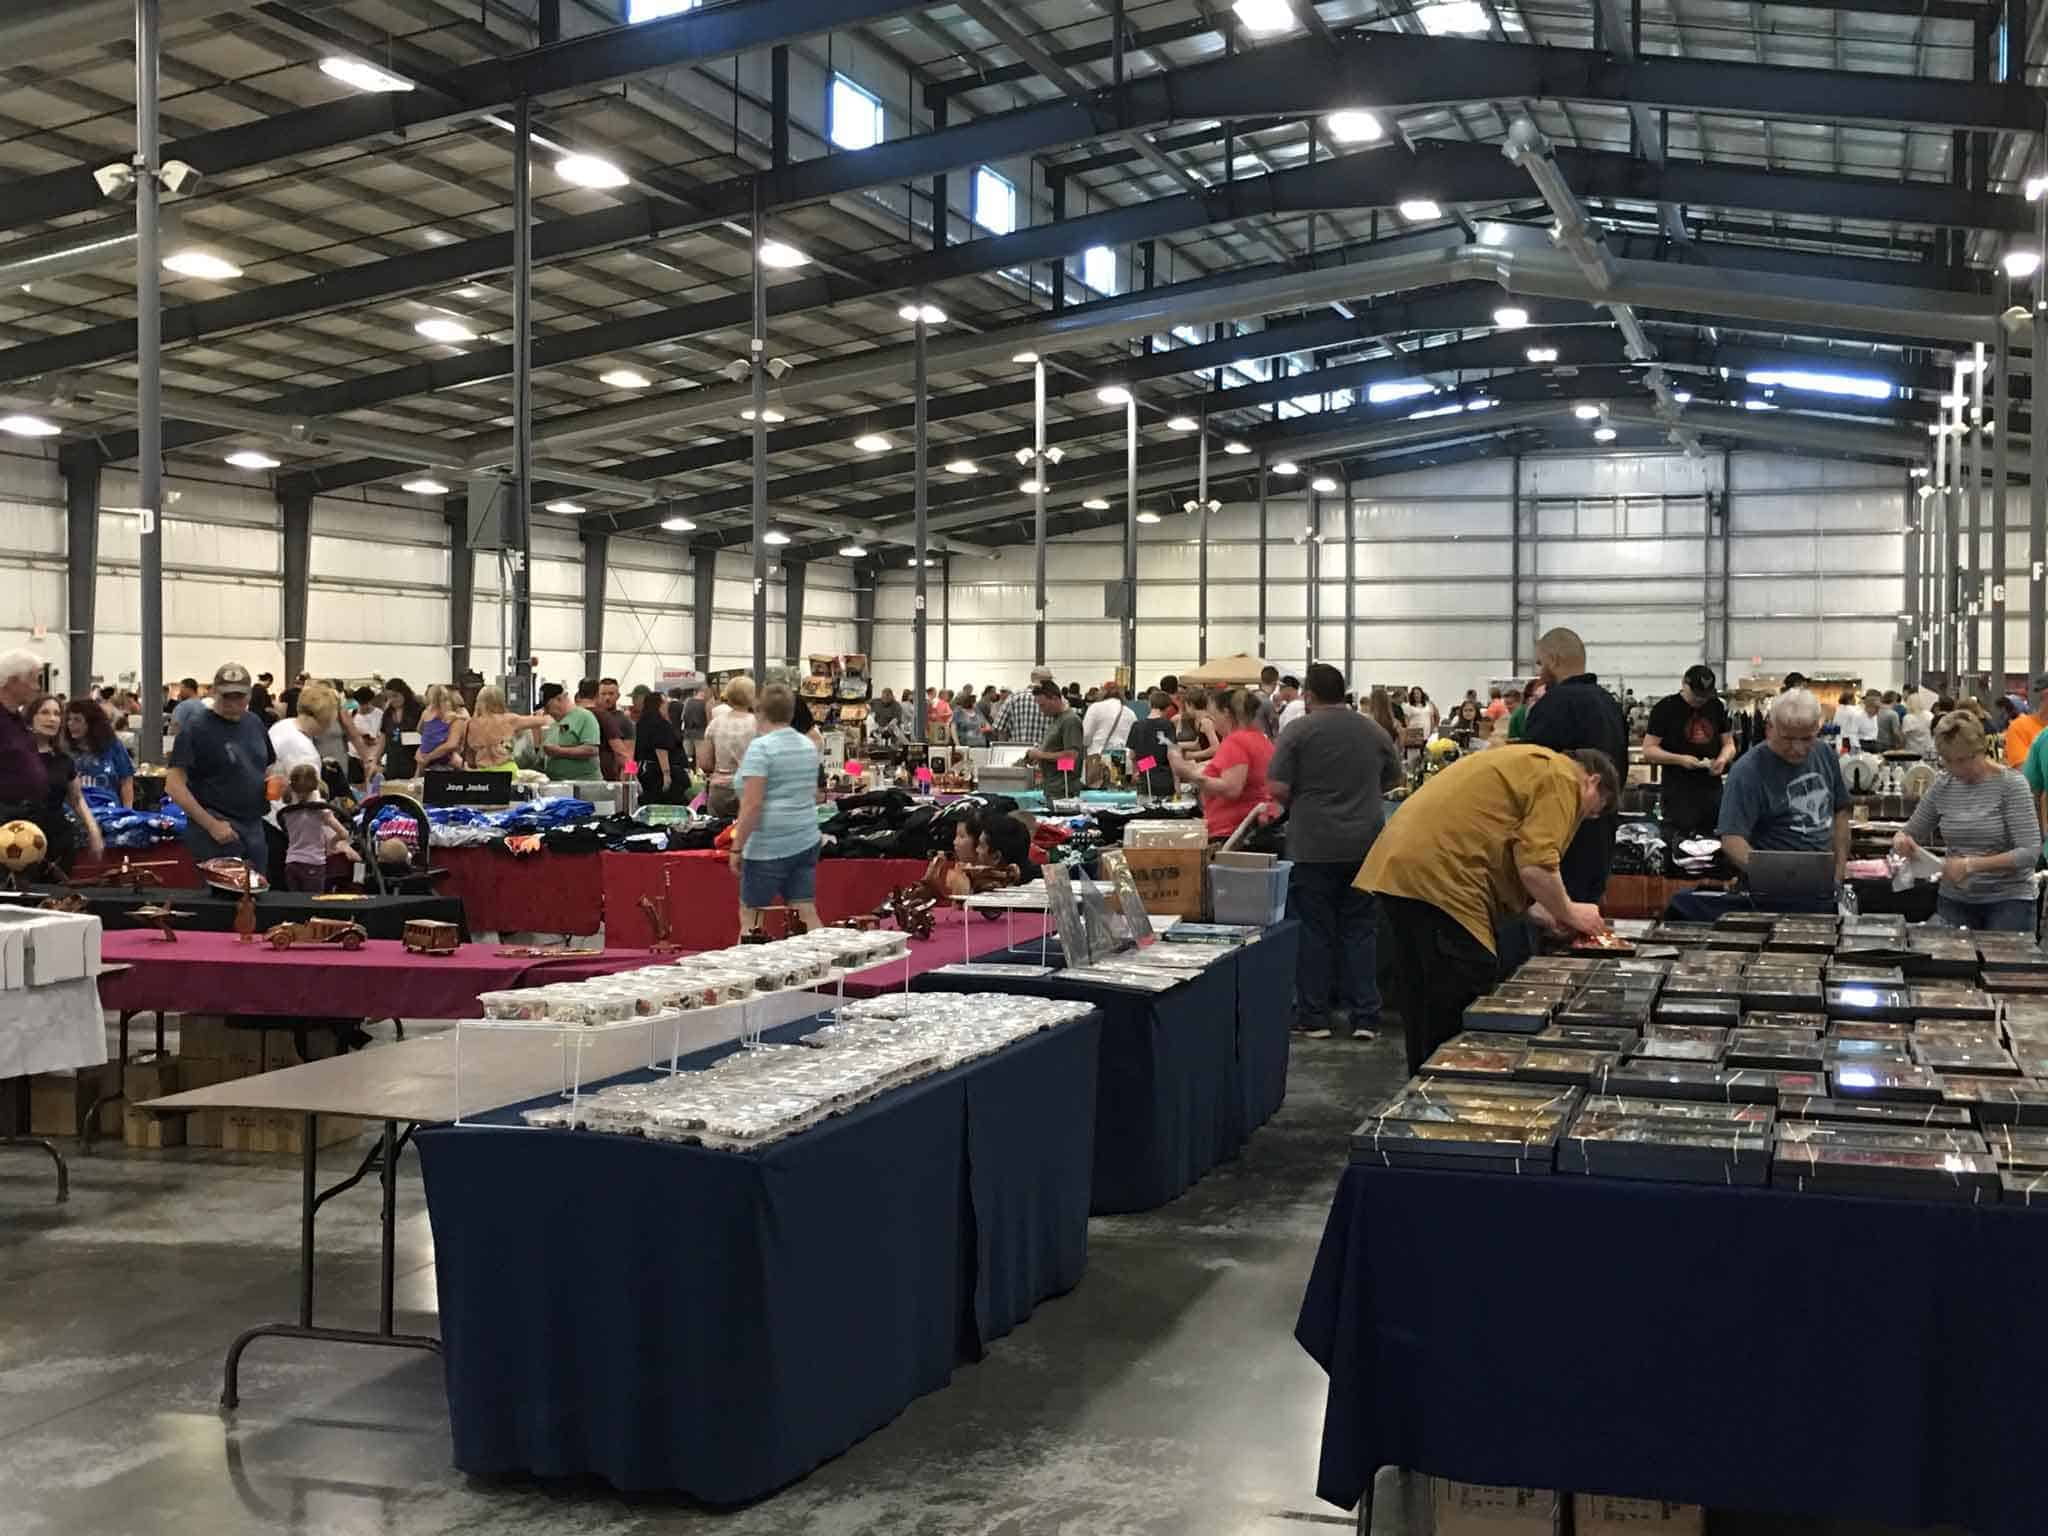 Grayslake Illinois Mid Night Flea Market